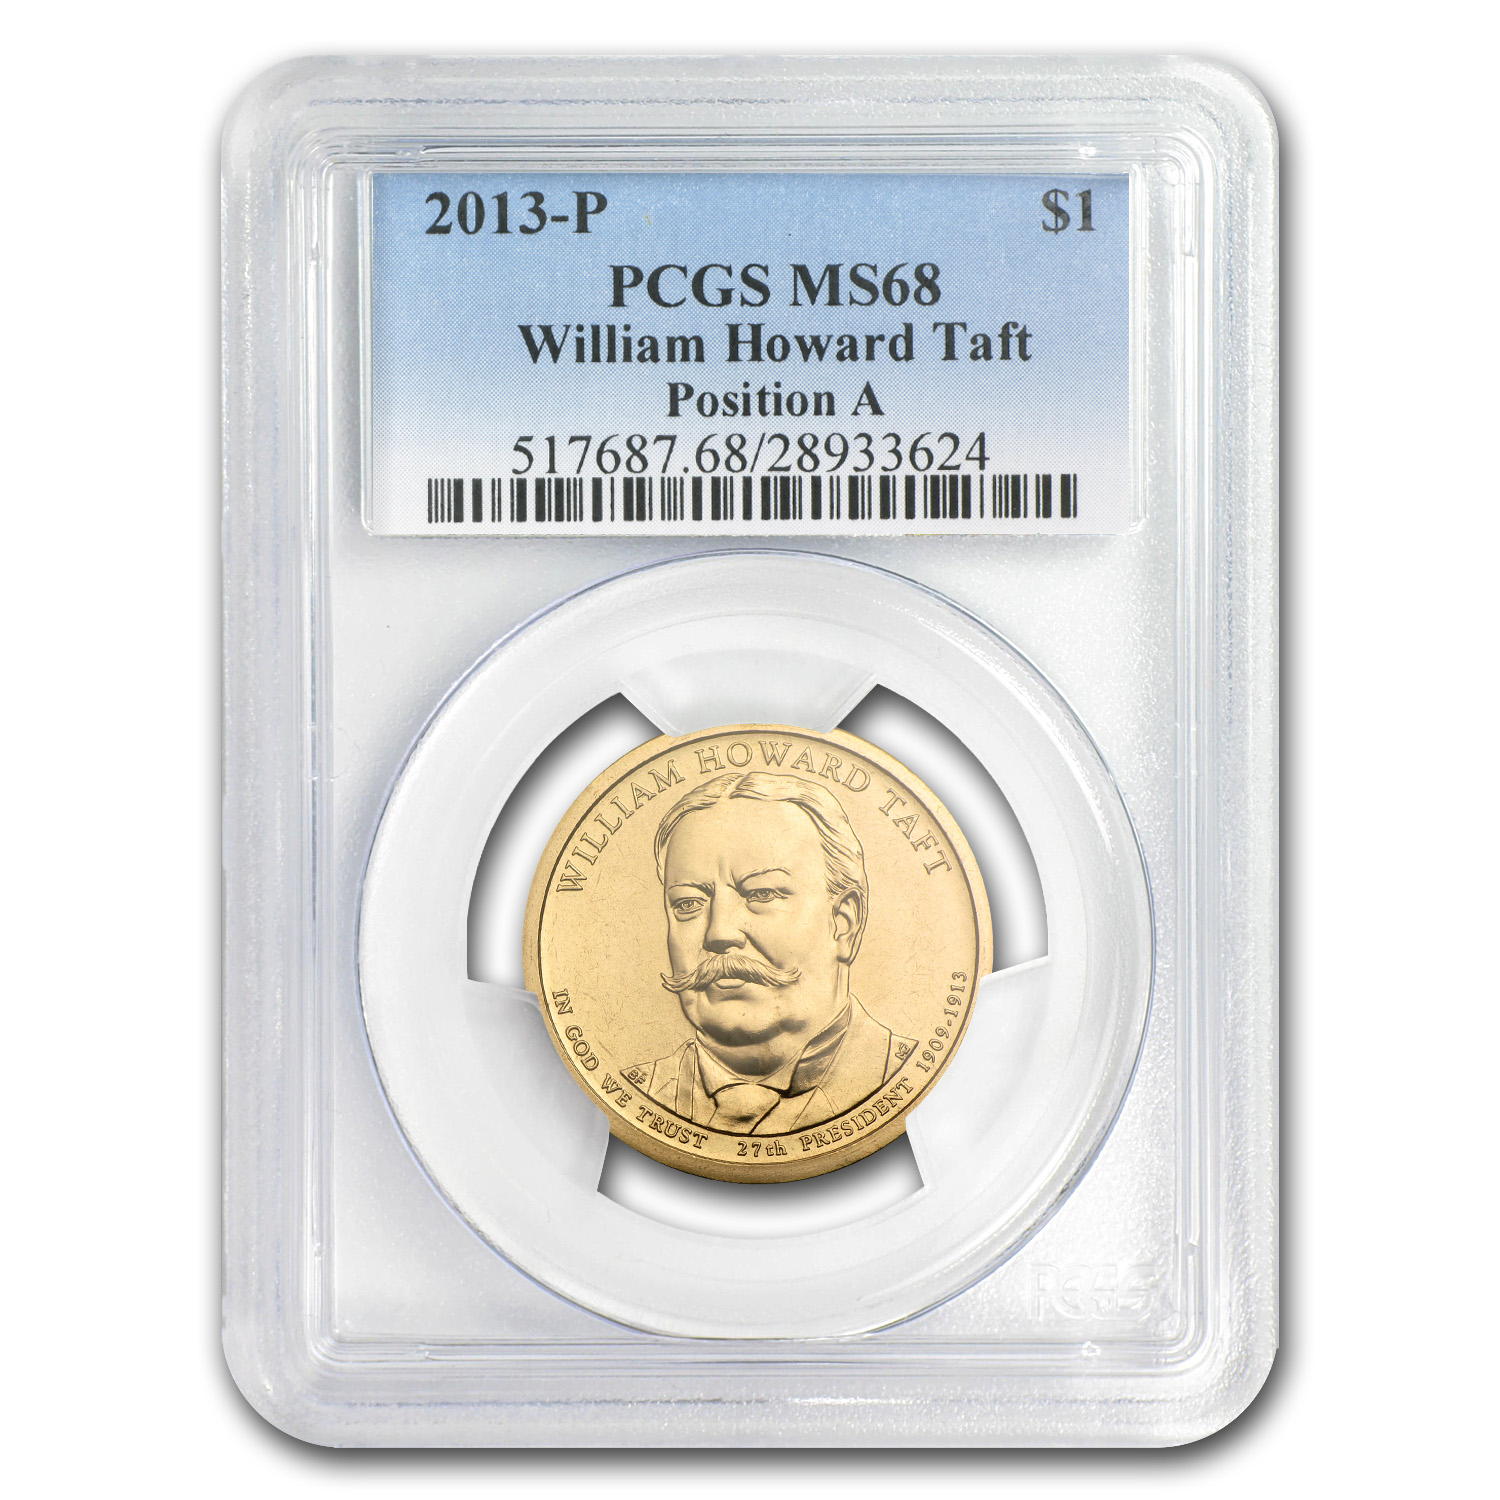 2013-P A Position William H. Taft  Presidential Dollar MS-68 PCGS